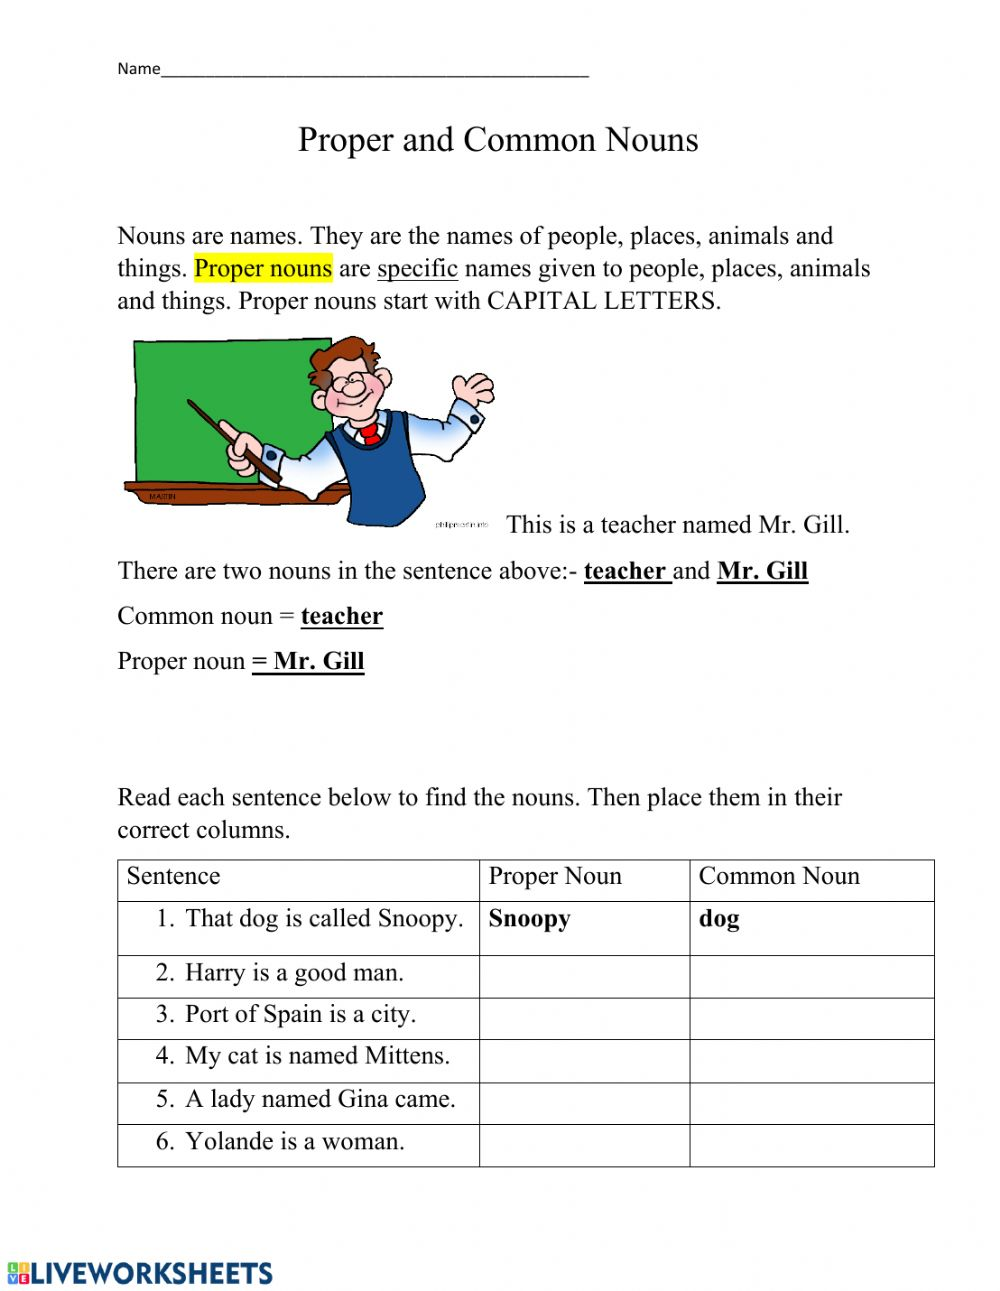 medium resolution of Proper and Common Nouns Practice worksheet